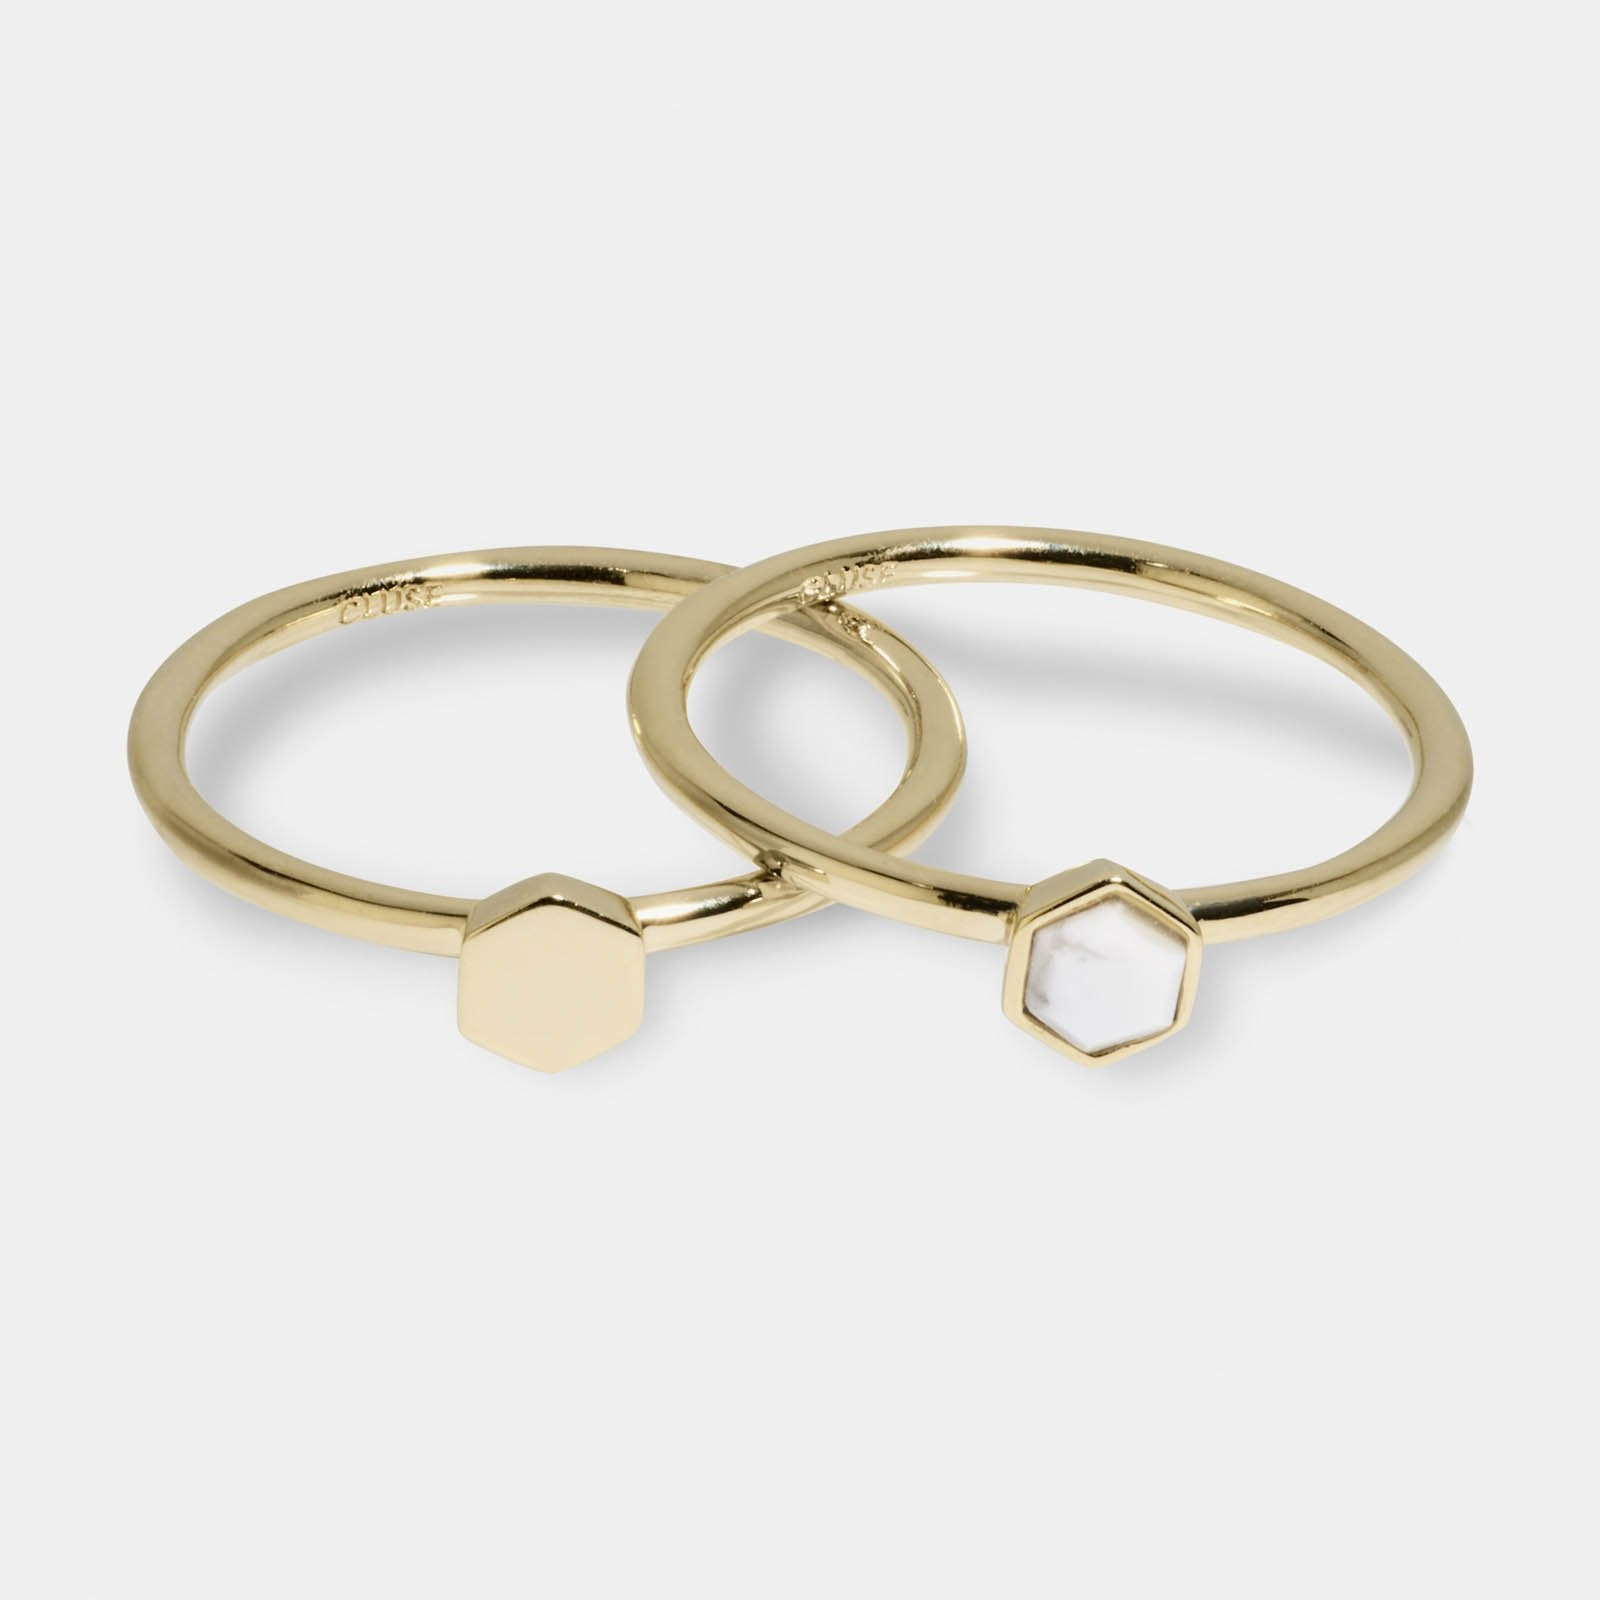 CLUSE Idylle Gold Solid And Marble Hexagon Ring Set CLJ41001-54 - Ringgröße 54